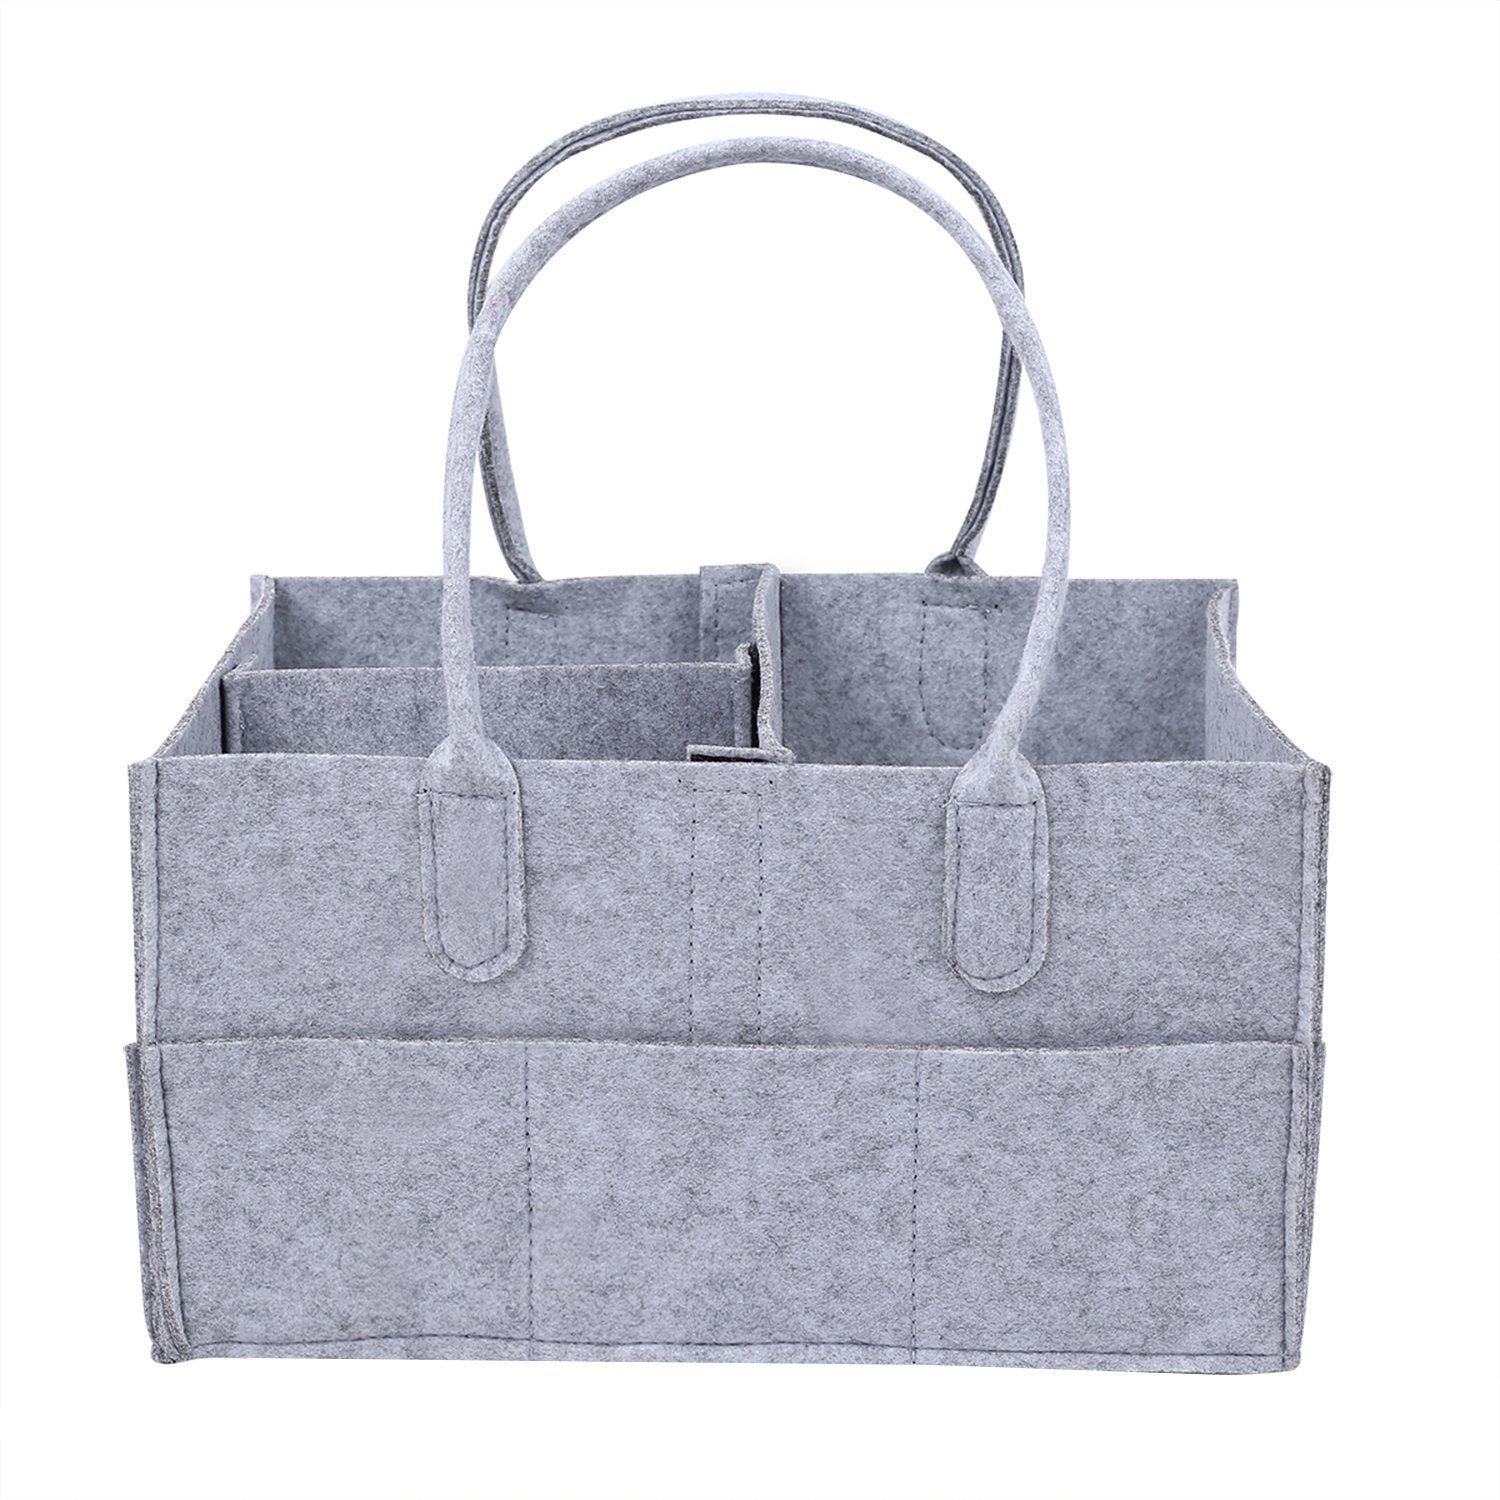 Baby Diaper Caddy with Changeble Compartments - Portable Nursery Storage Bin for Home, Car & Nursery Organizer